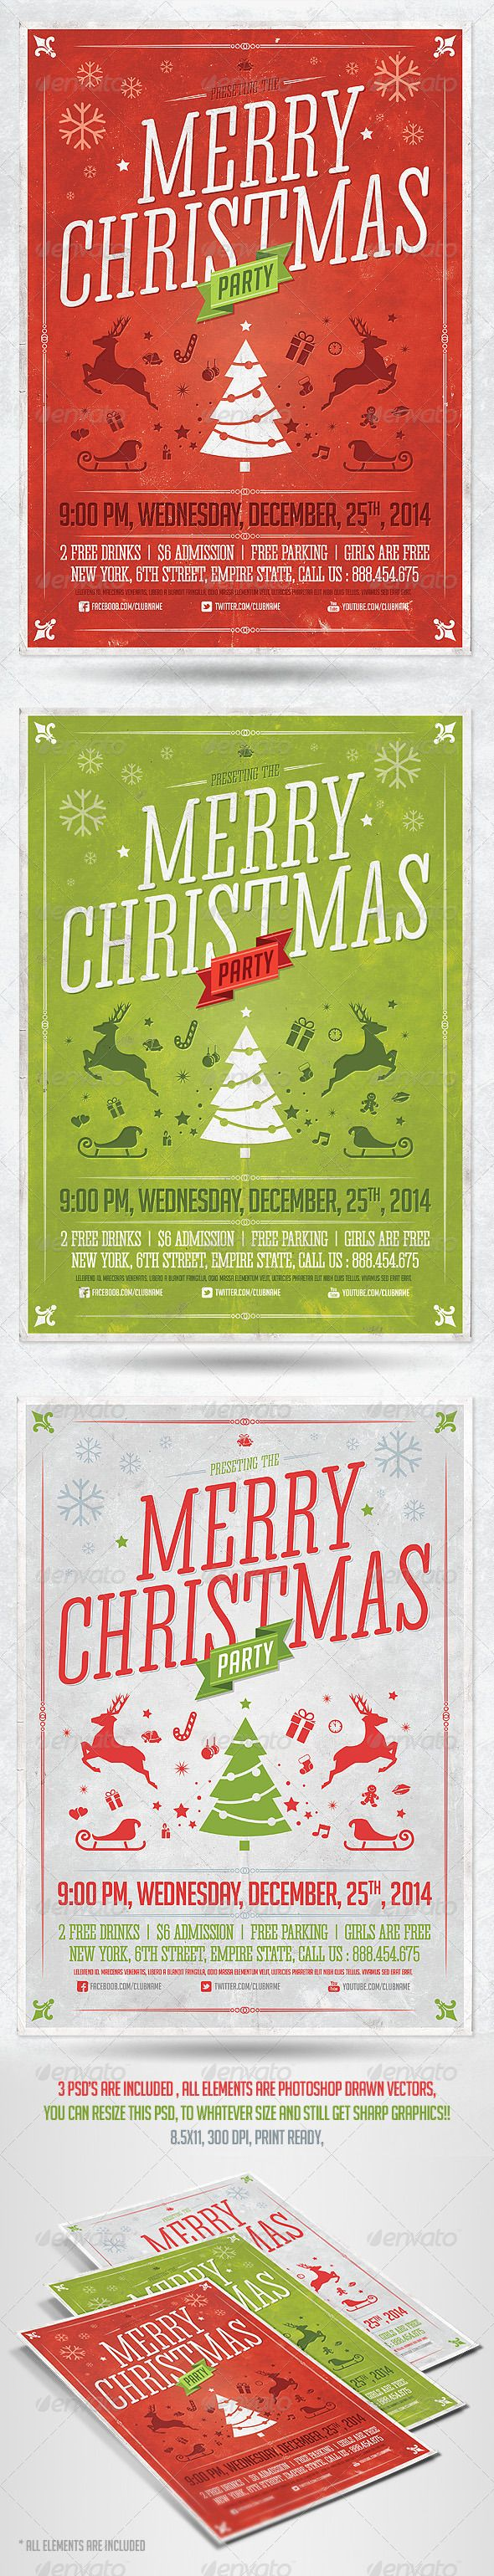 Retro Christmas Party Flyer PSD Template - Holidays Events